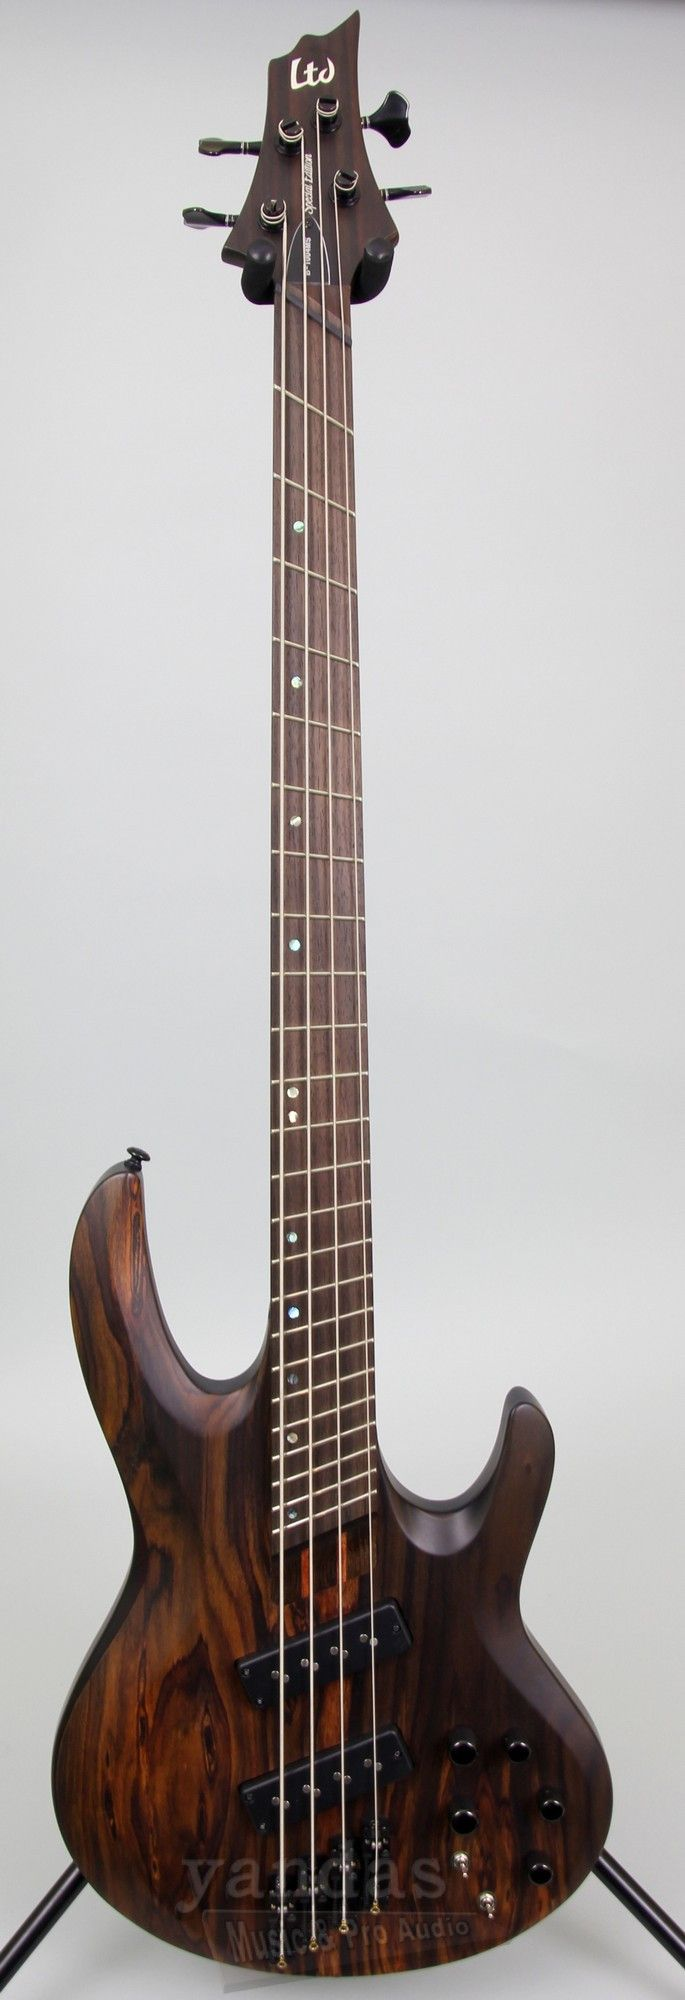 Is Bass Easier Than Guitar? - becomeabassist.com